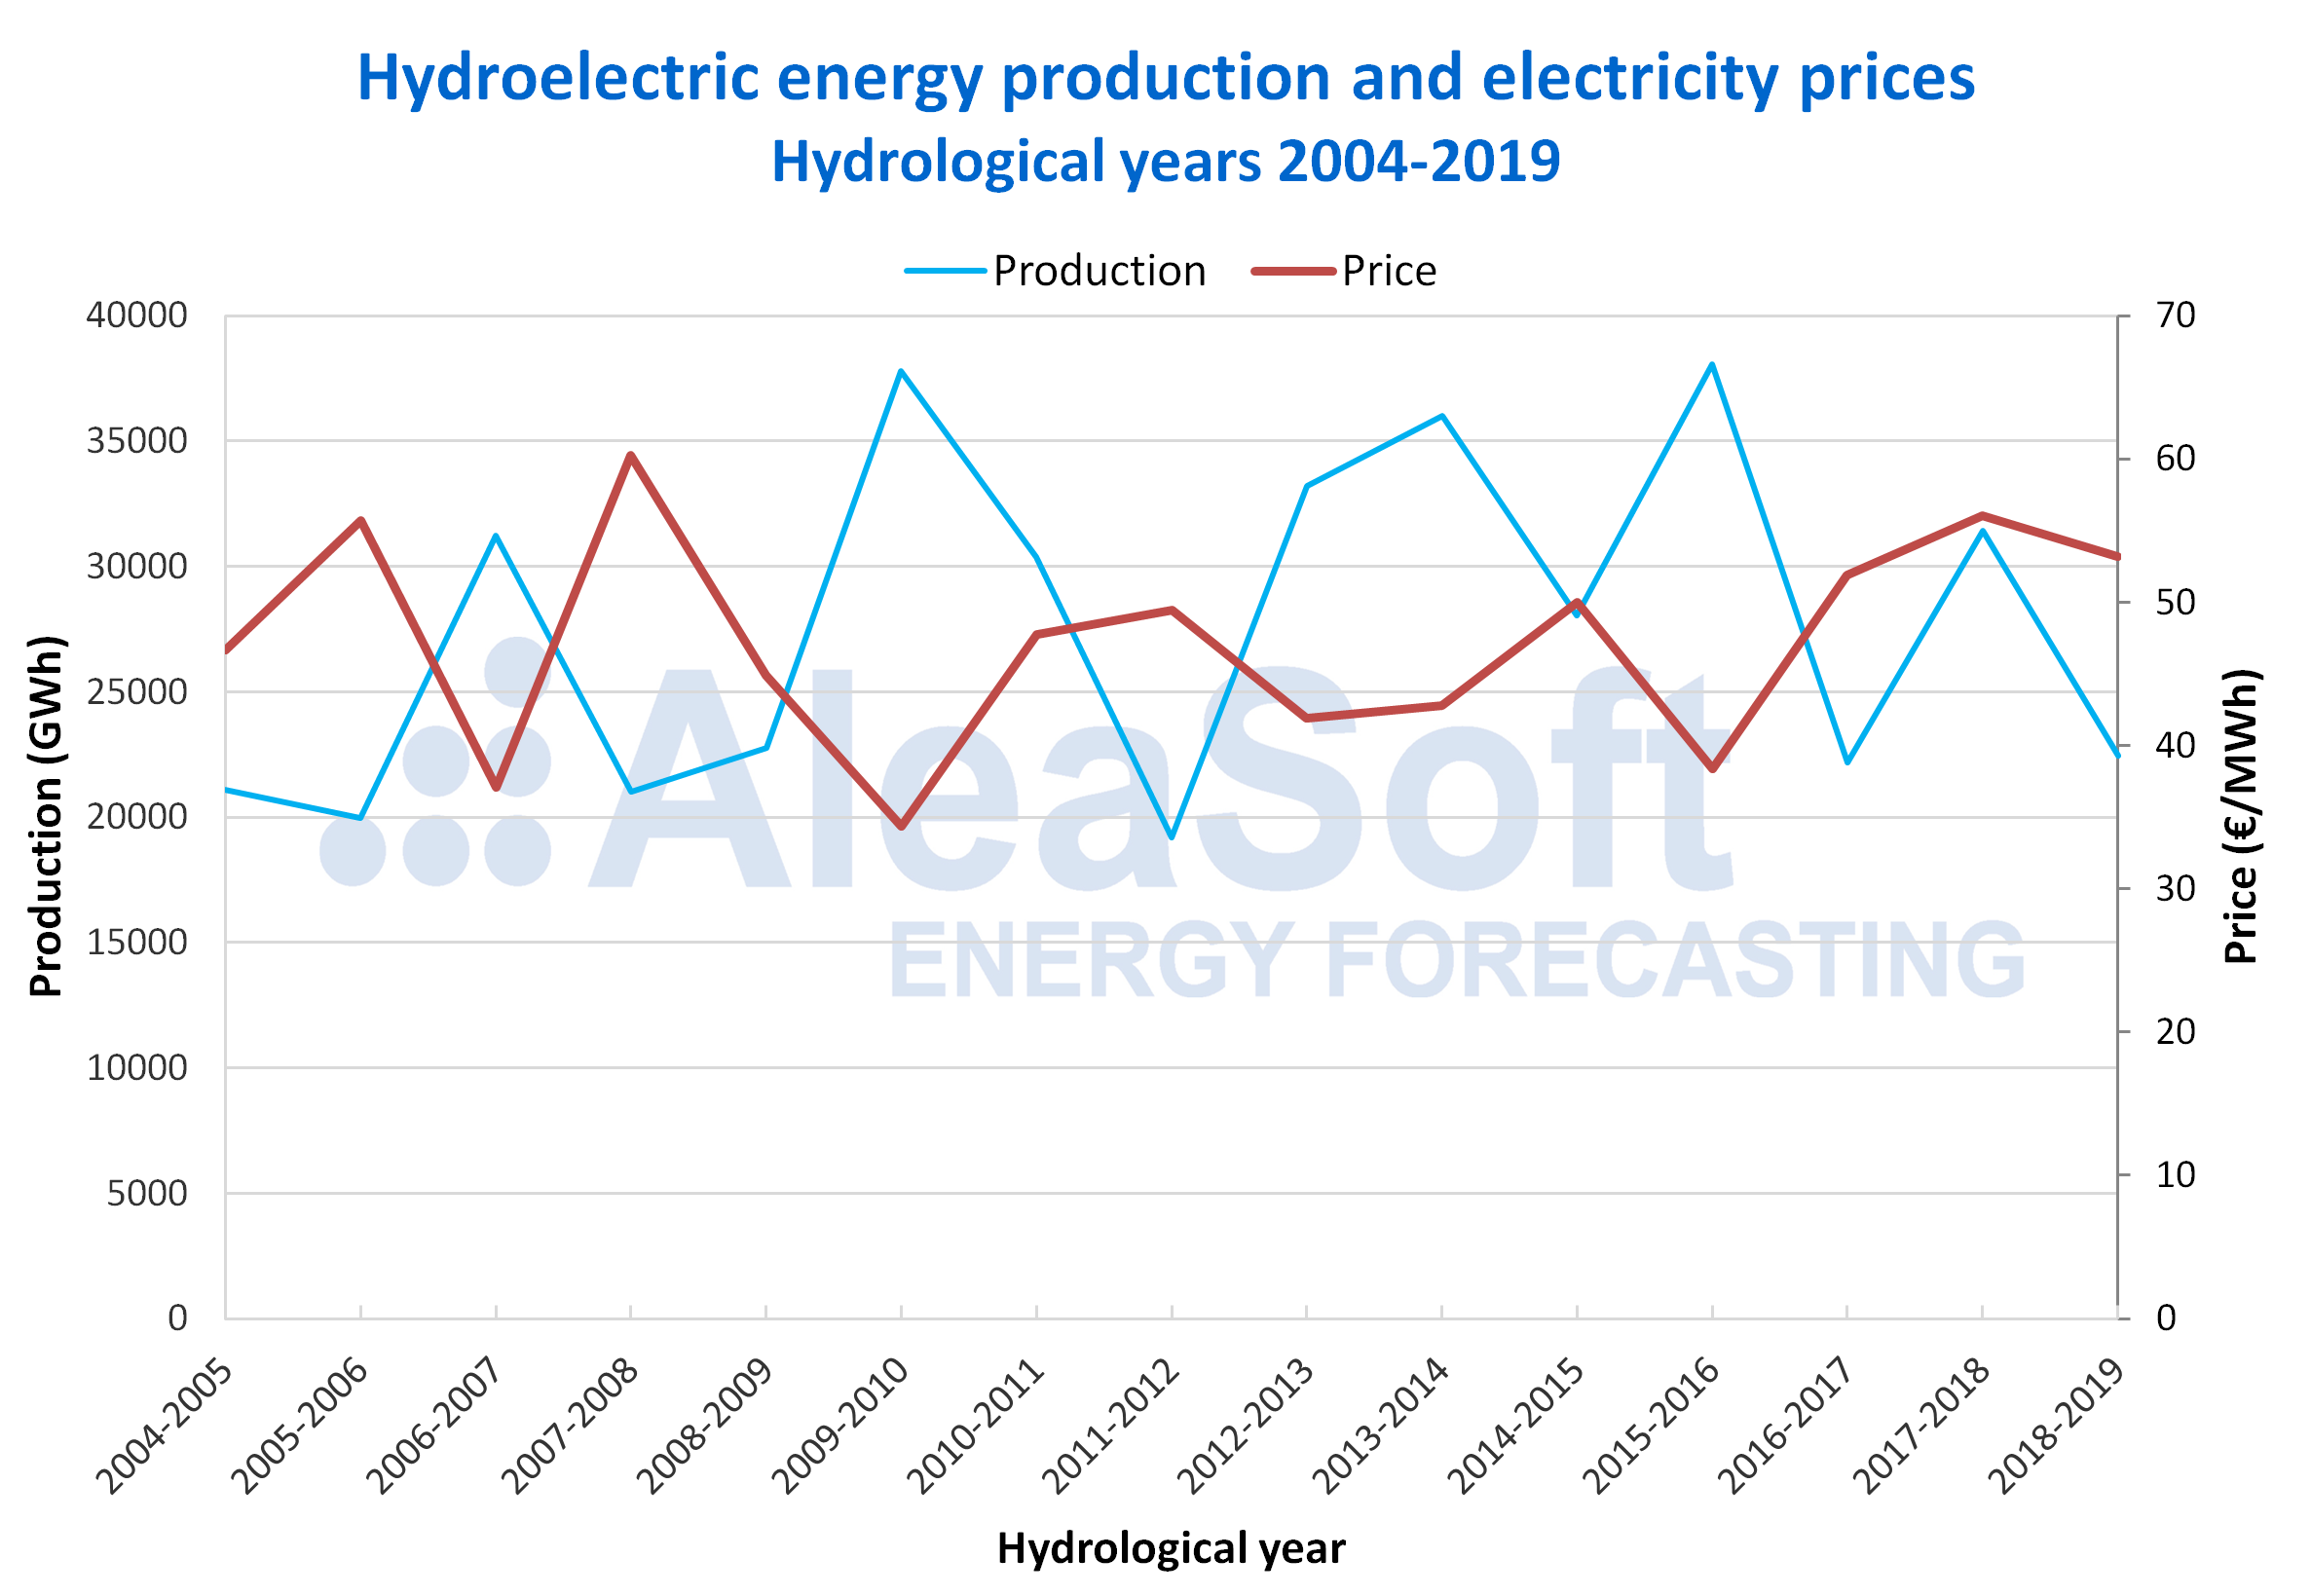 AleaSoft - Spain hydroelectric production electricity market price hydrological years 2004-2019